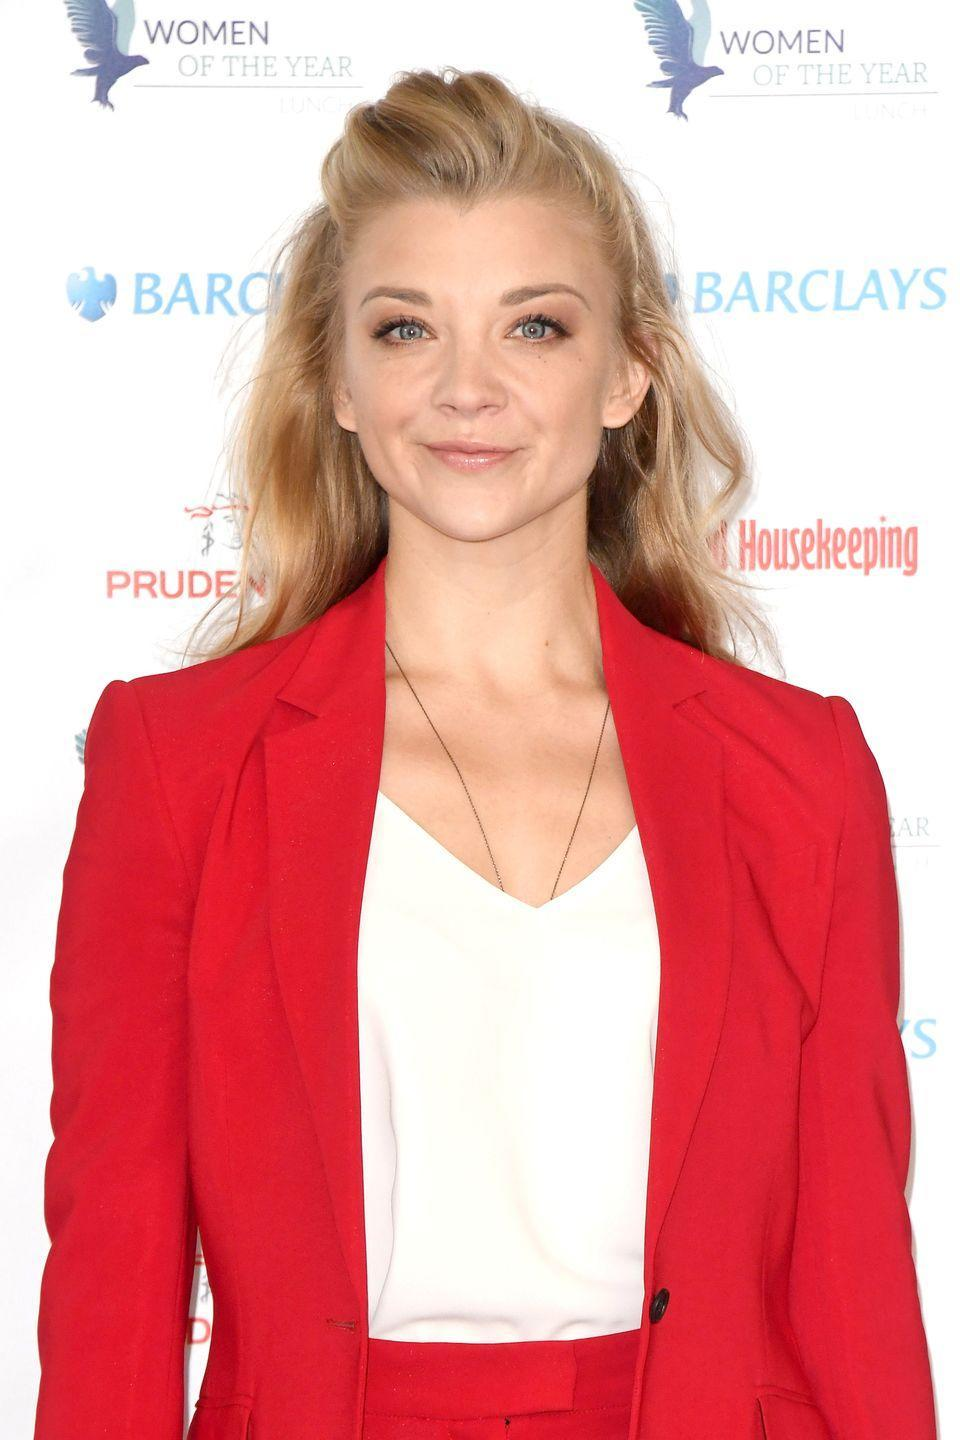 """<p><strong>The role:</strong> <a href=""""https://www.buzzfeed.com/keelyflaherty/natalie-dormer-auditioned-for-a-completely-different-role-on?utm_term=.wprRgvOME#.mm22M6B7D"""" rel=""""nofollow noopener"""" target=""""_blank"""" data-ylk=""""slk:Unknown"""" class=""""link rapid-noclick-resp"""">Unknown</a> in <em>Game of Thrones</em> (2011-present) </p><p><strong>Who *actually* played it:</strong> TBD</p><p><strong>The role they played instead:</strong> Margaery Tyrell </p><p>Dormer revealed that she auditioned for a different female role in <em>Game of Thrones</em>, but won't reveal who. She was initially hesitant to accept her current role as Margaery because the character was so similar to one she previously played in <em>The Tudors</em>.</p>"""